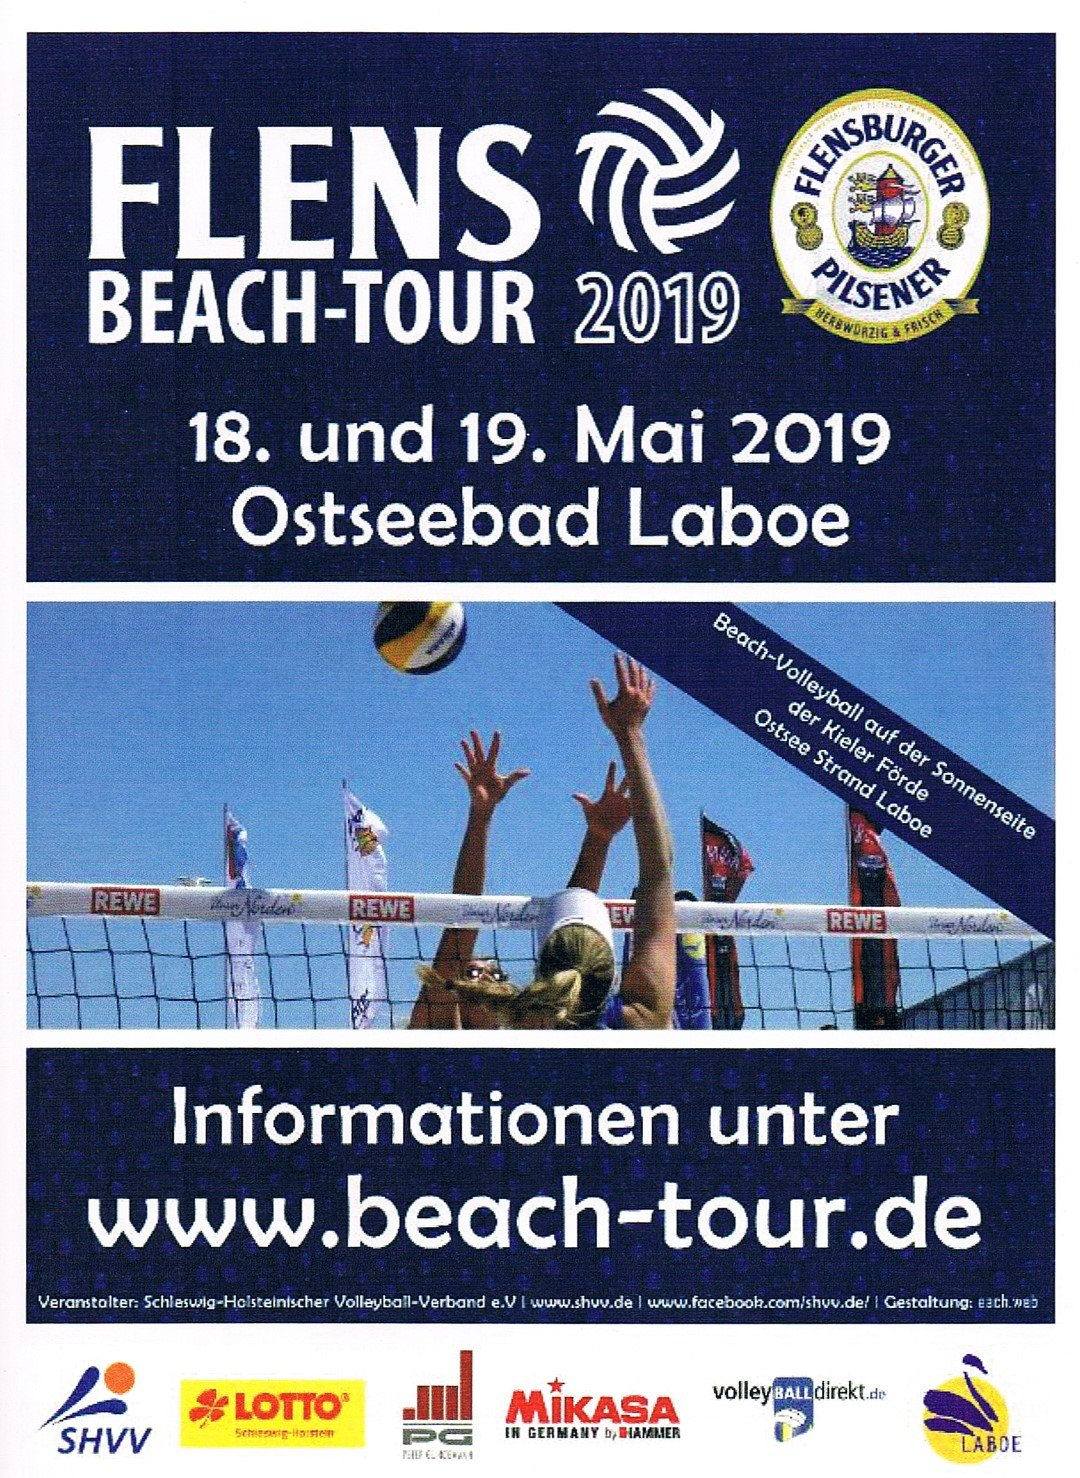 Flens Beacht Tour 2019 Laboe